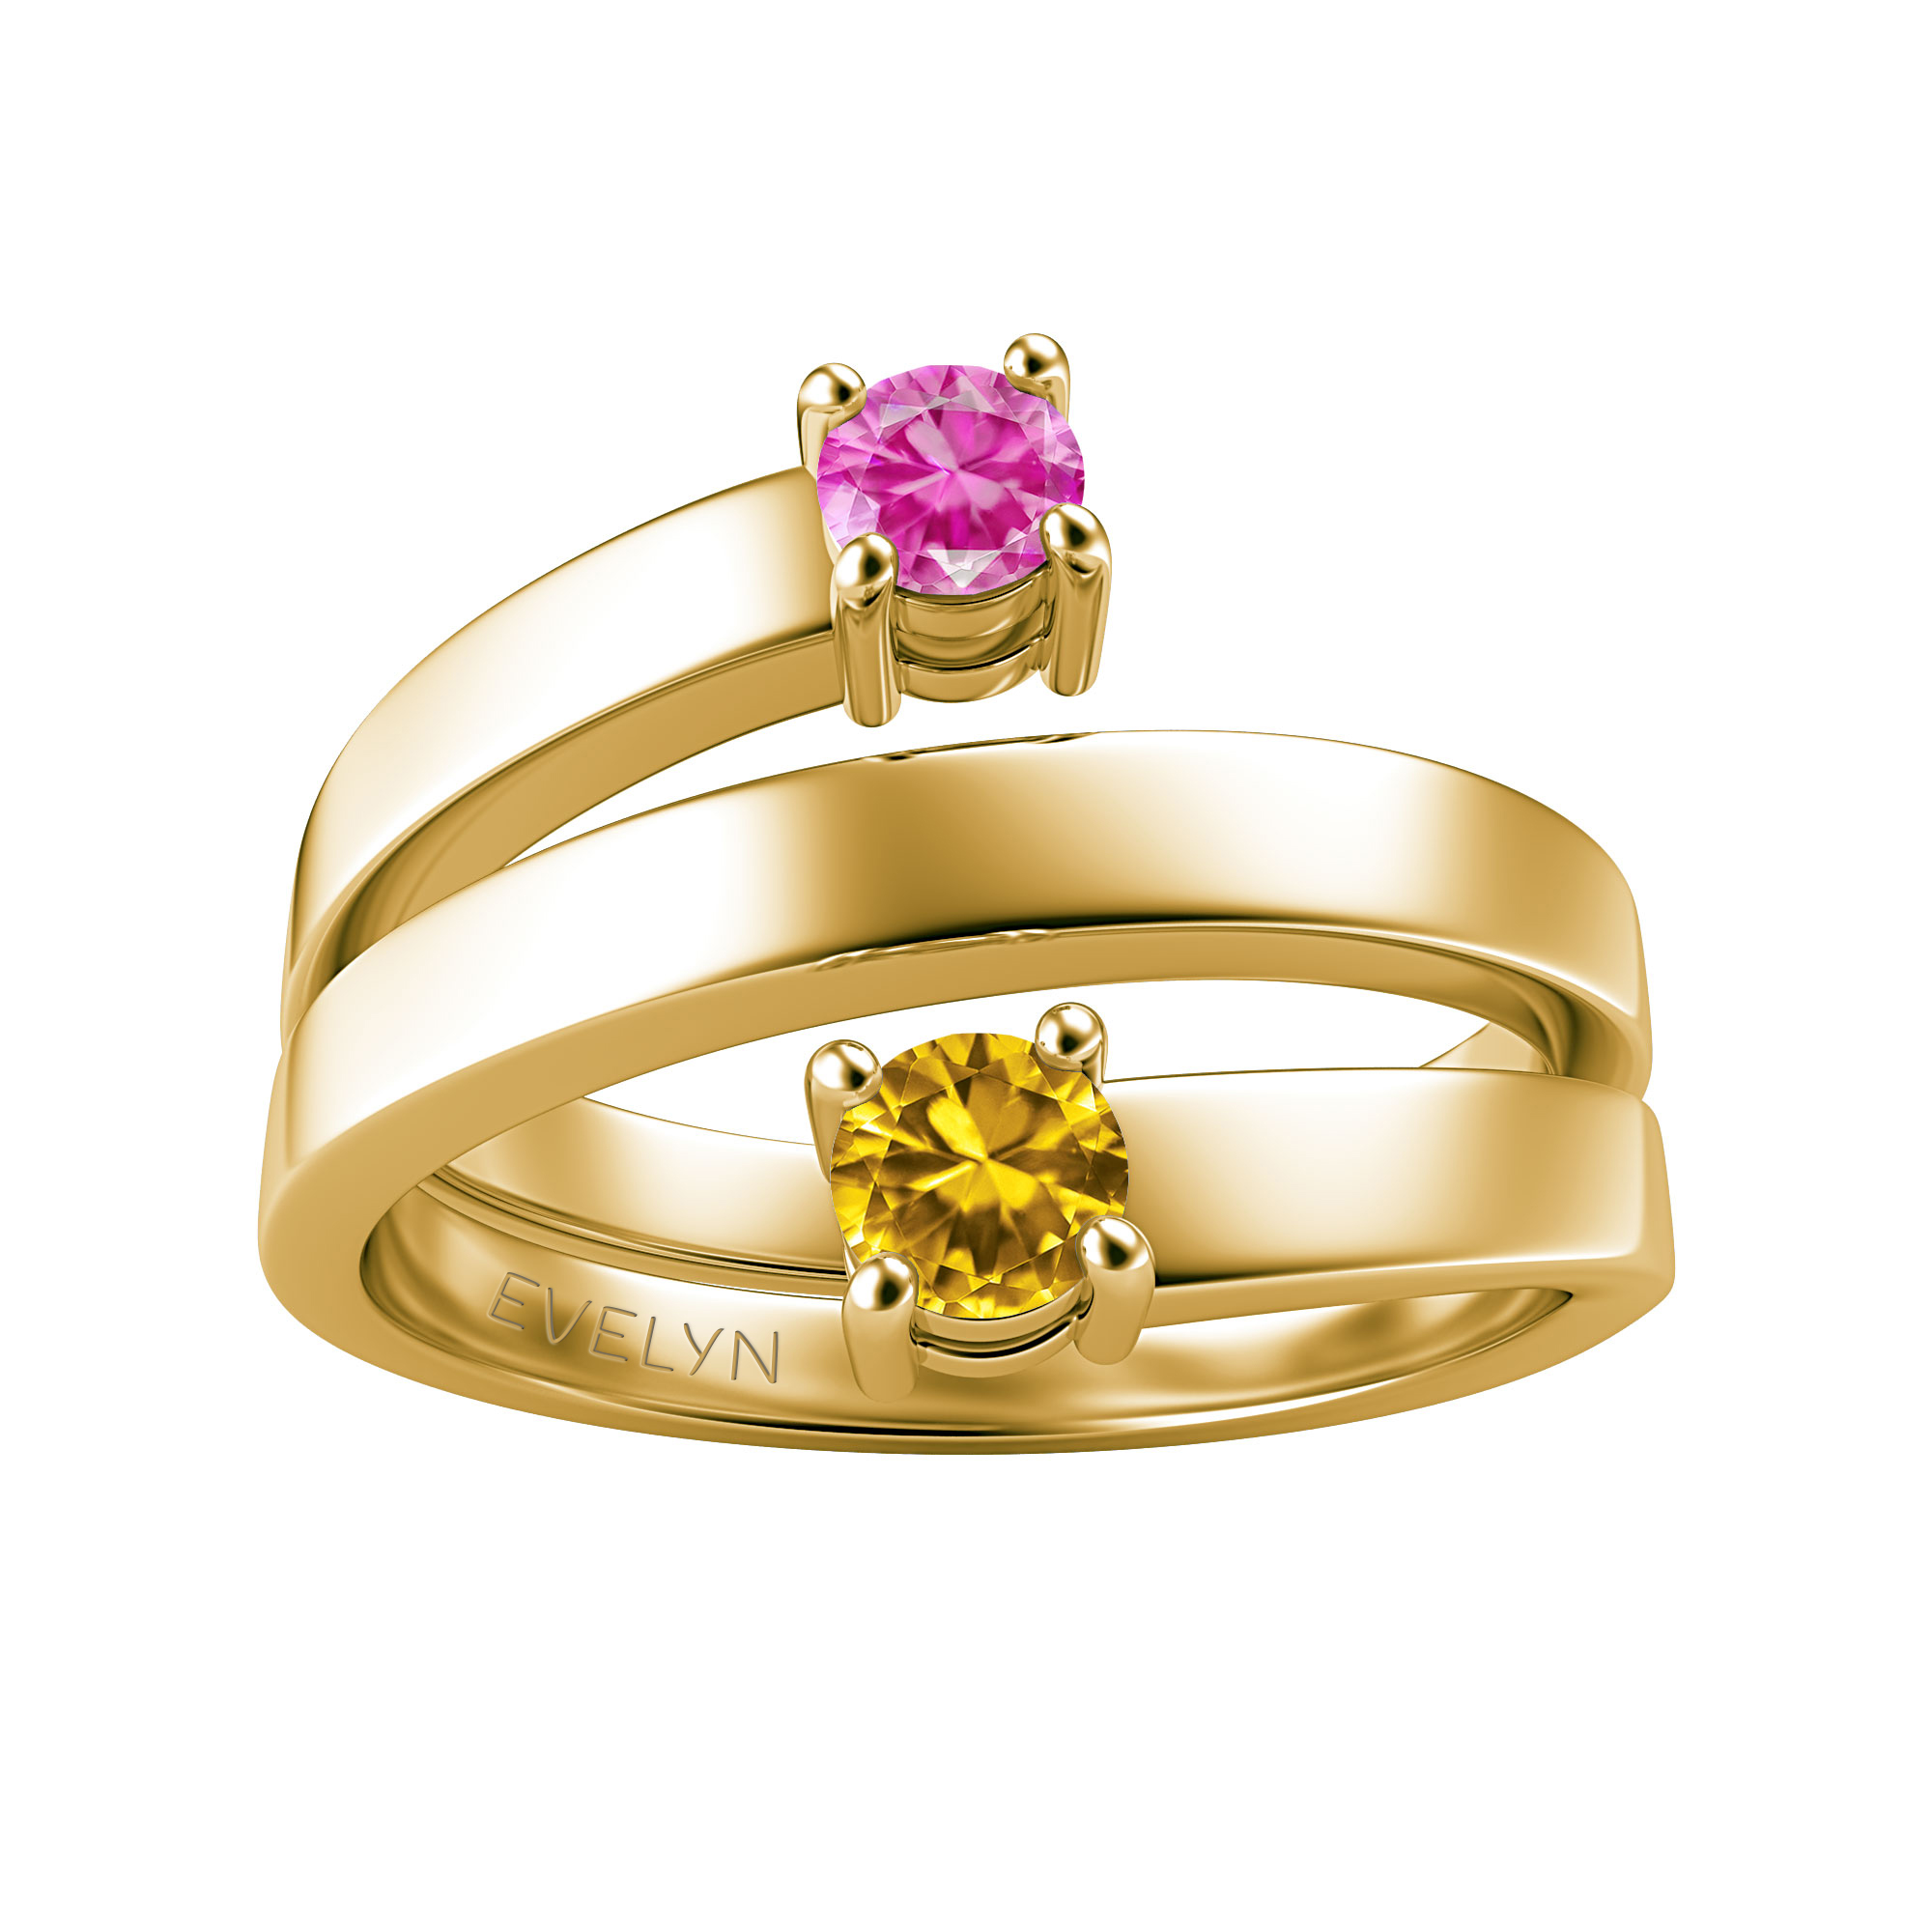 Couple's Custom Birthstone Engravable Coil Ring